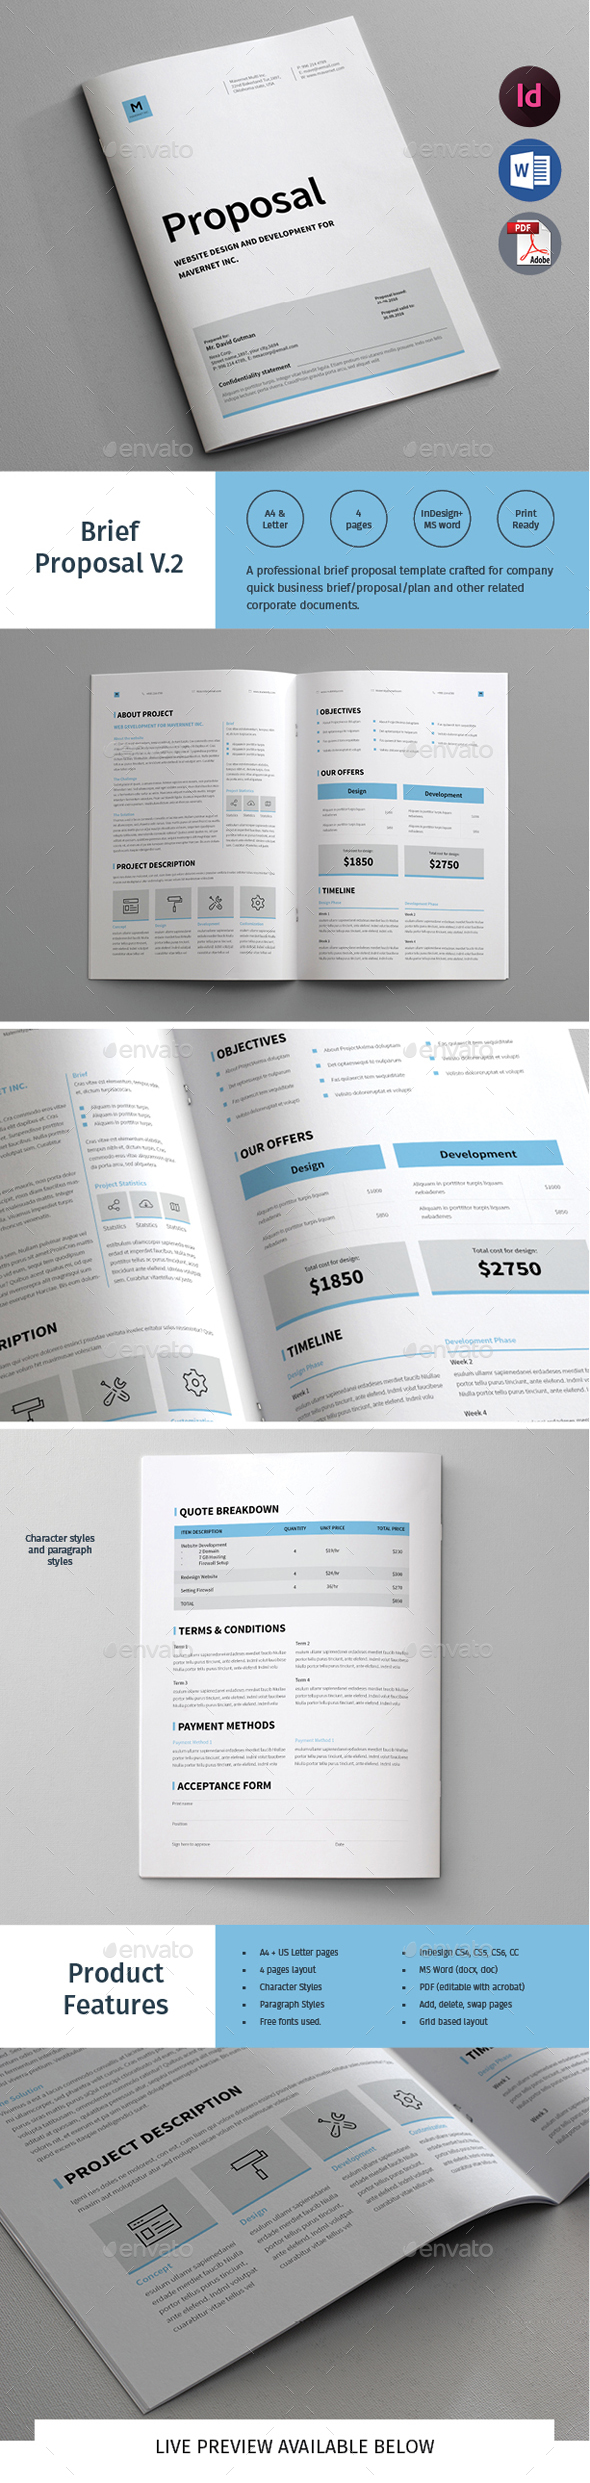 Brief Proposal  Proposal Templates And Proposals